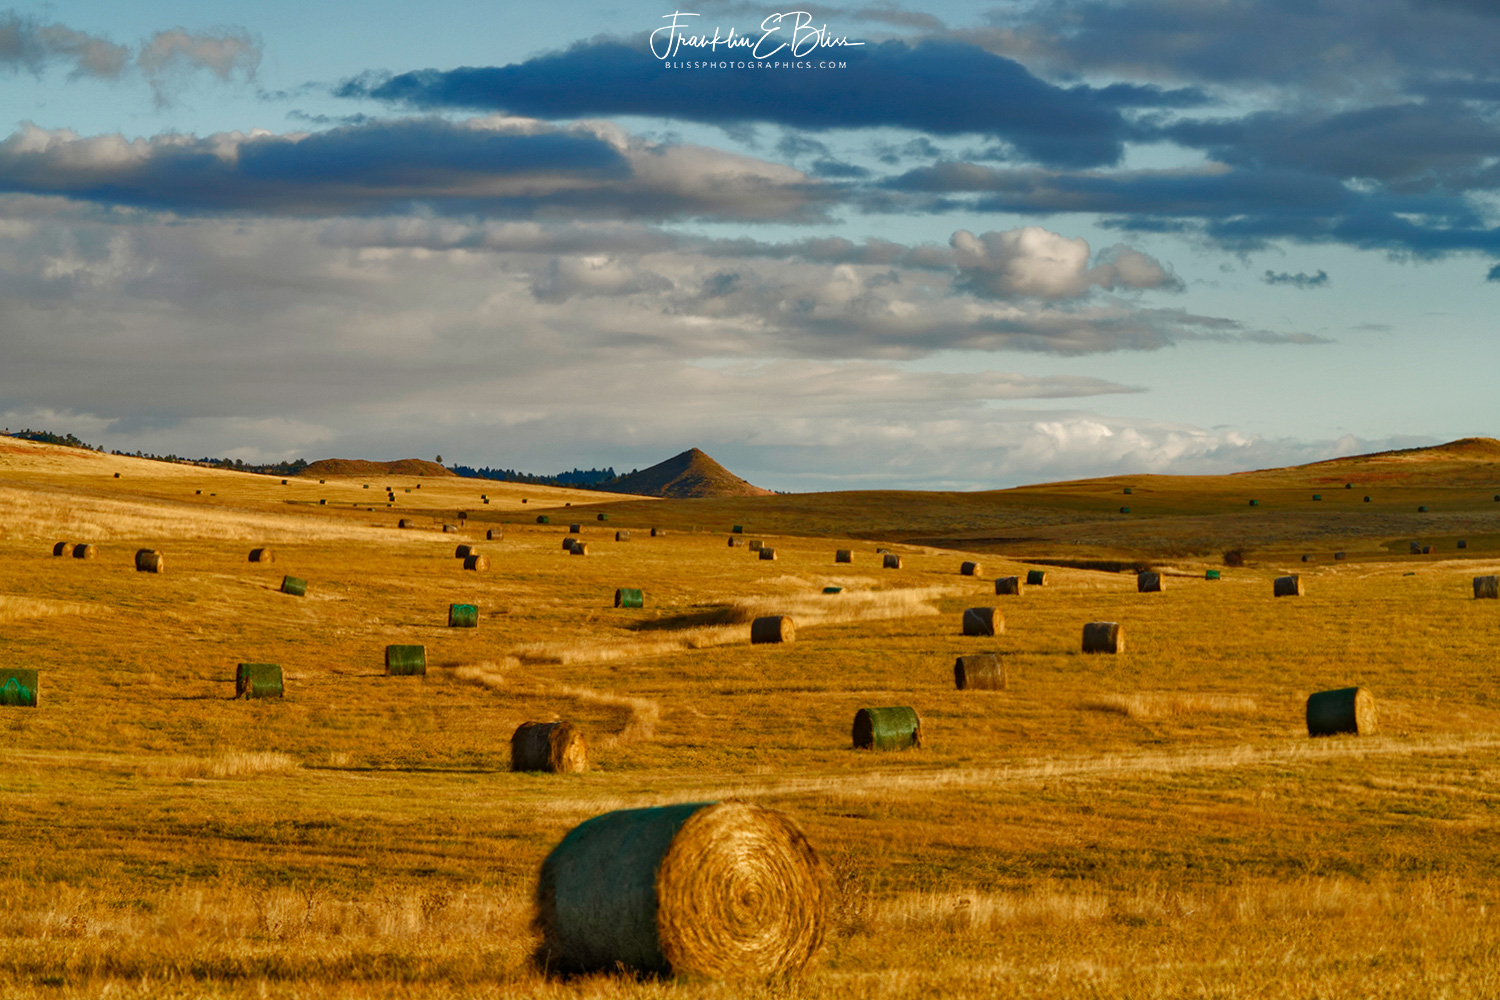 Perspective: Hay Bales on Mitten Butte's Apron